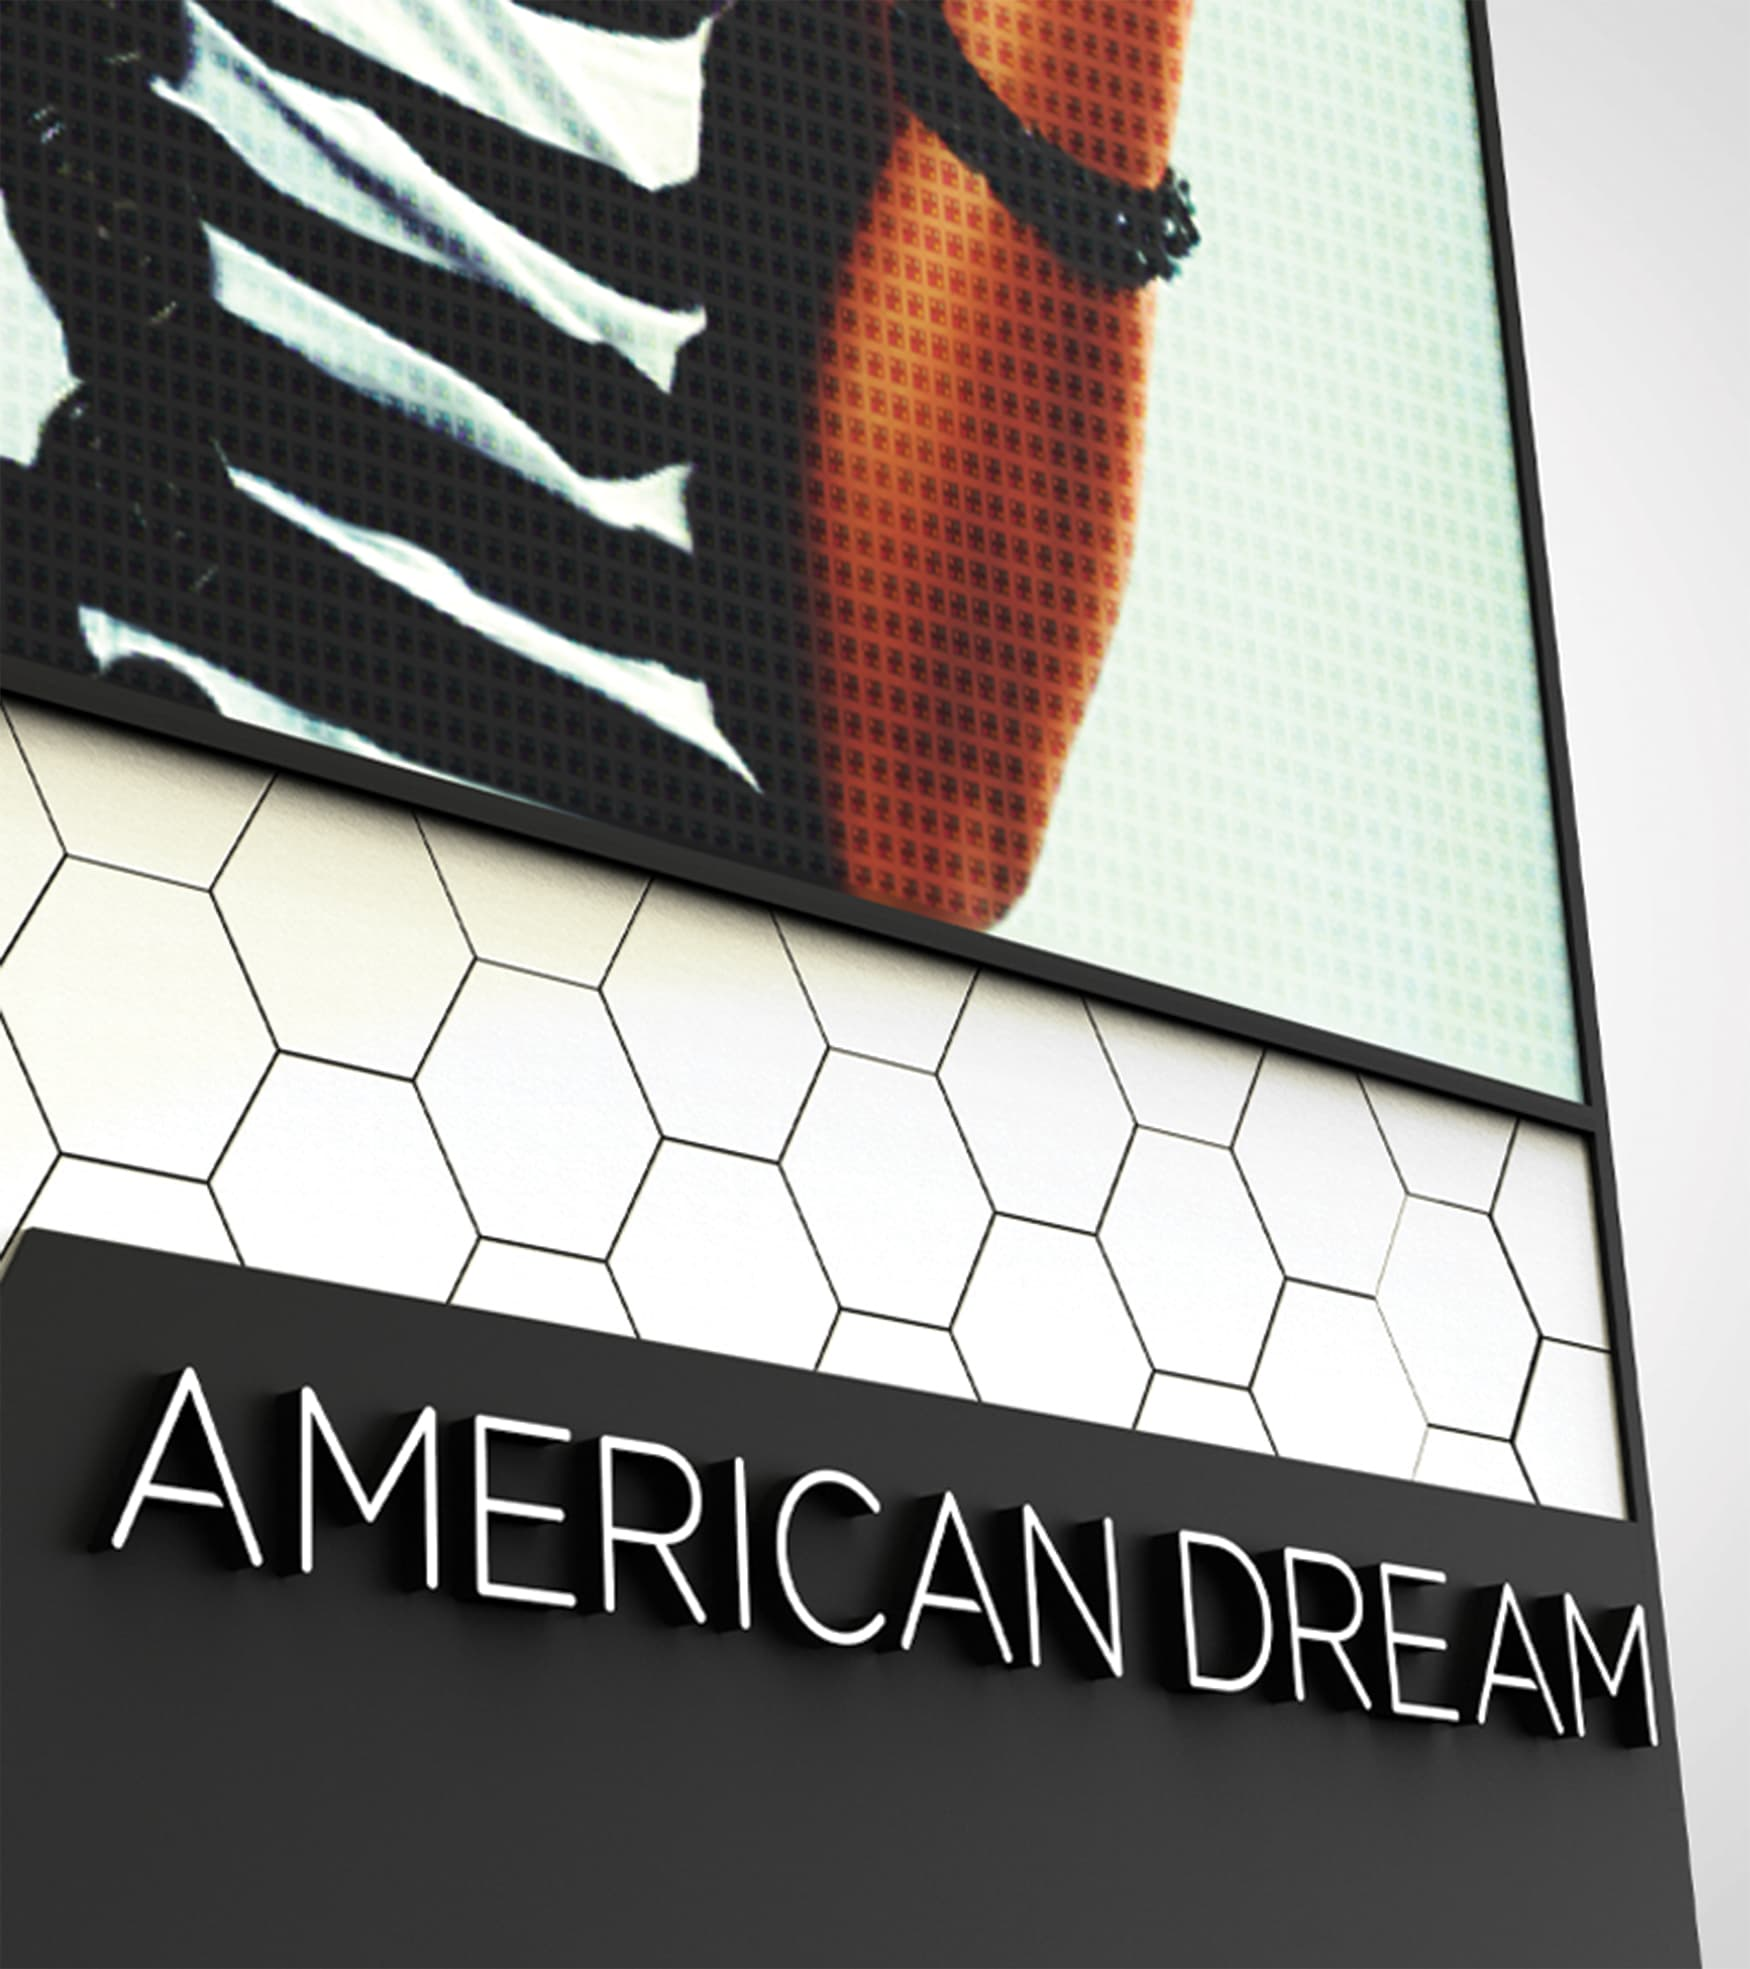 American Dream Retail Project Design in East Rutherford, New Jersey. American Dream highway pylon design detail